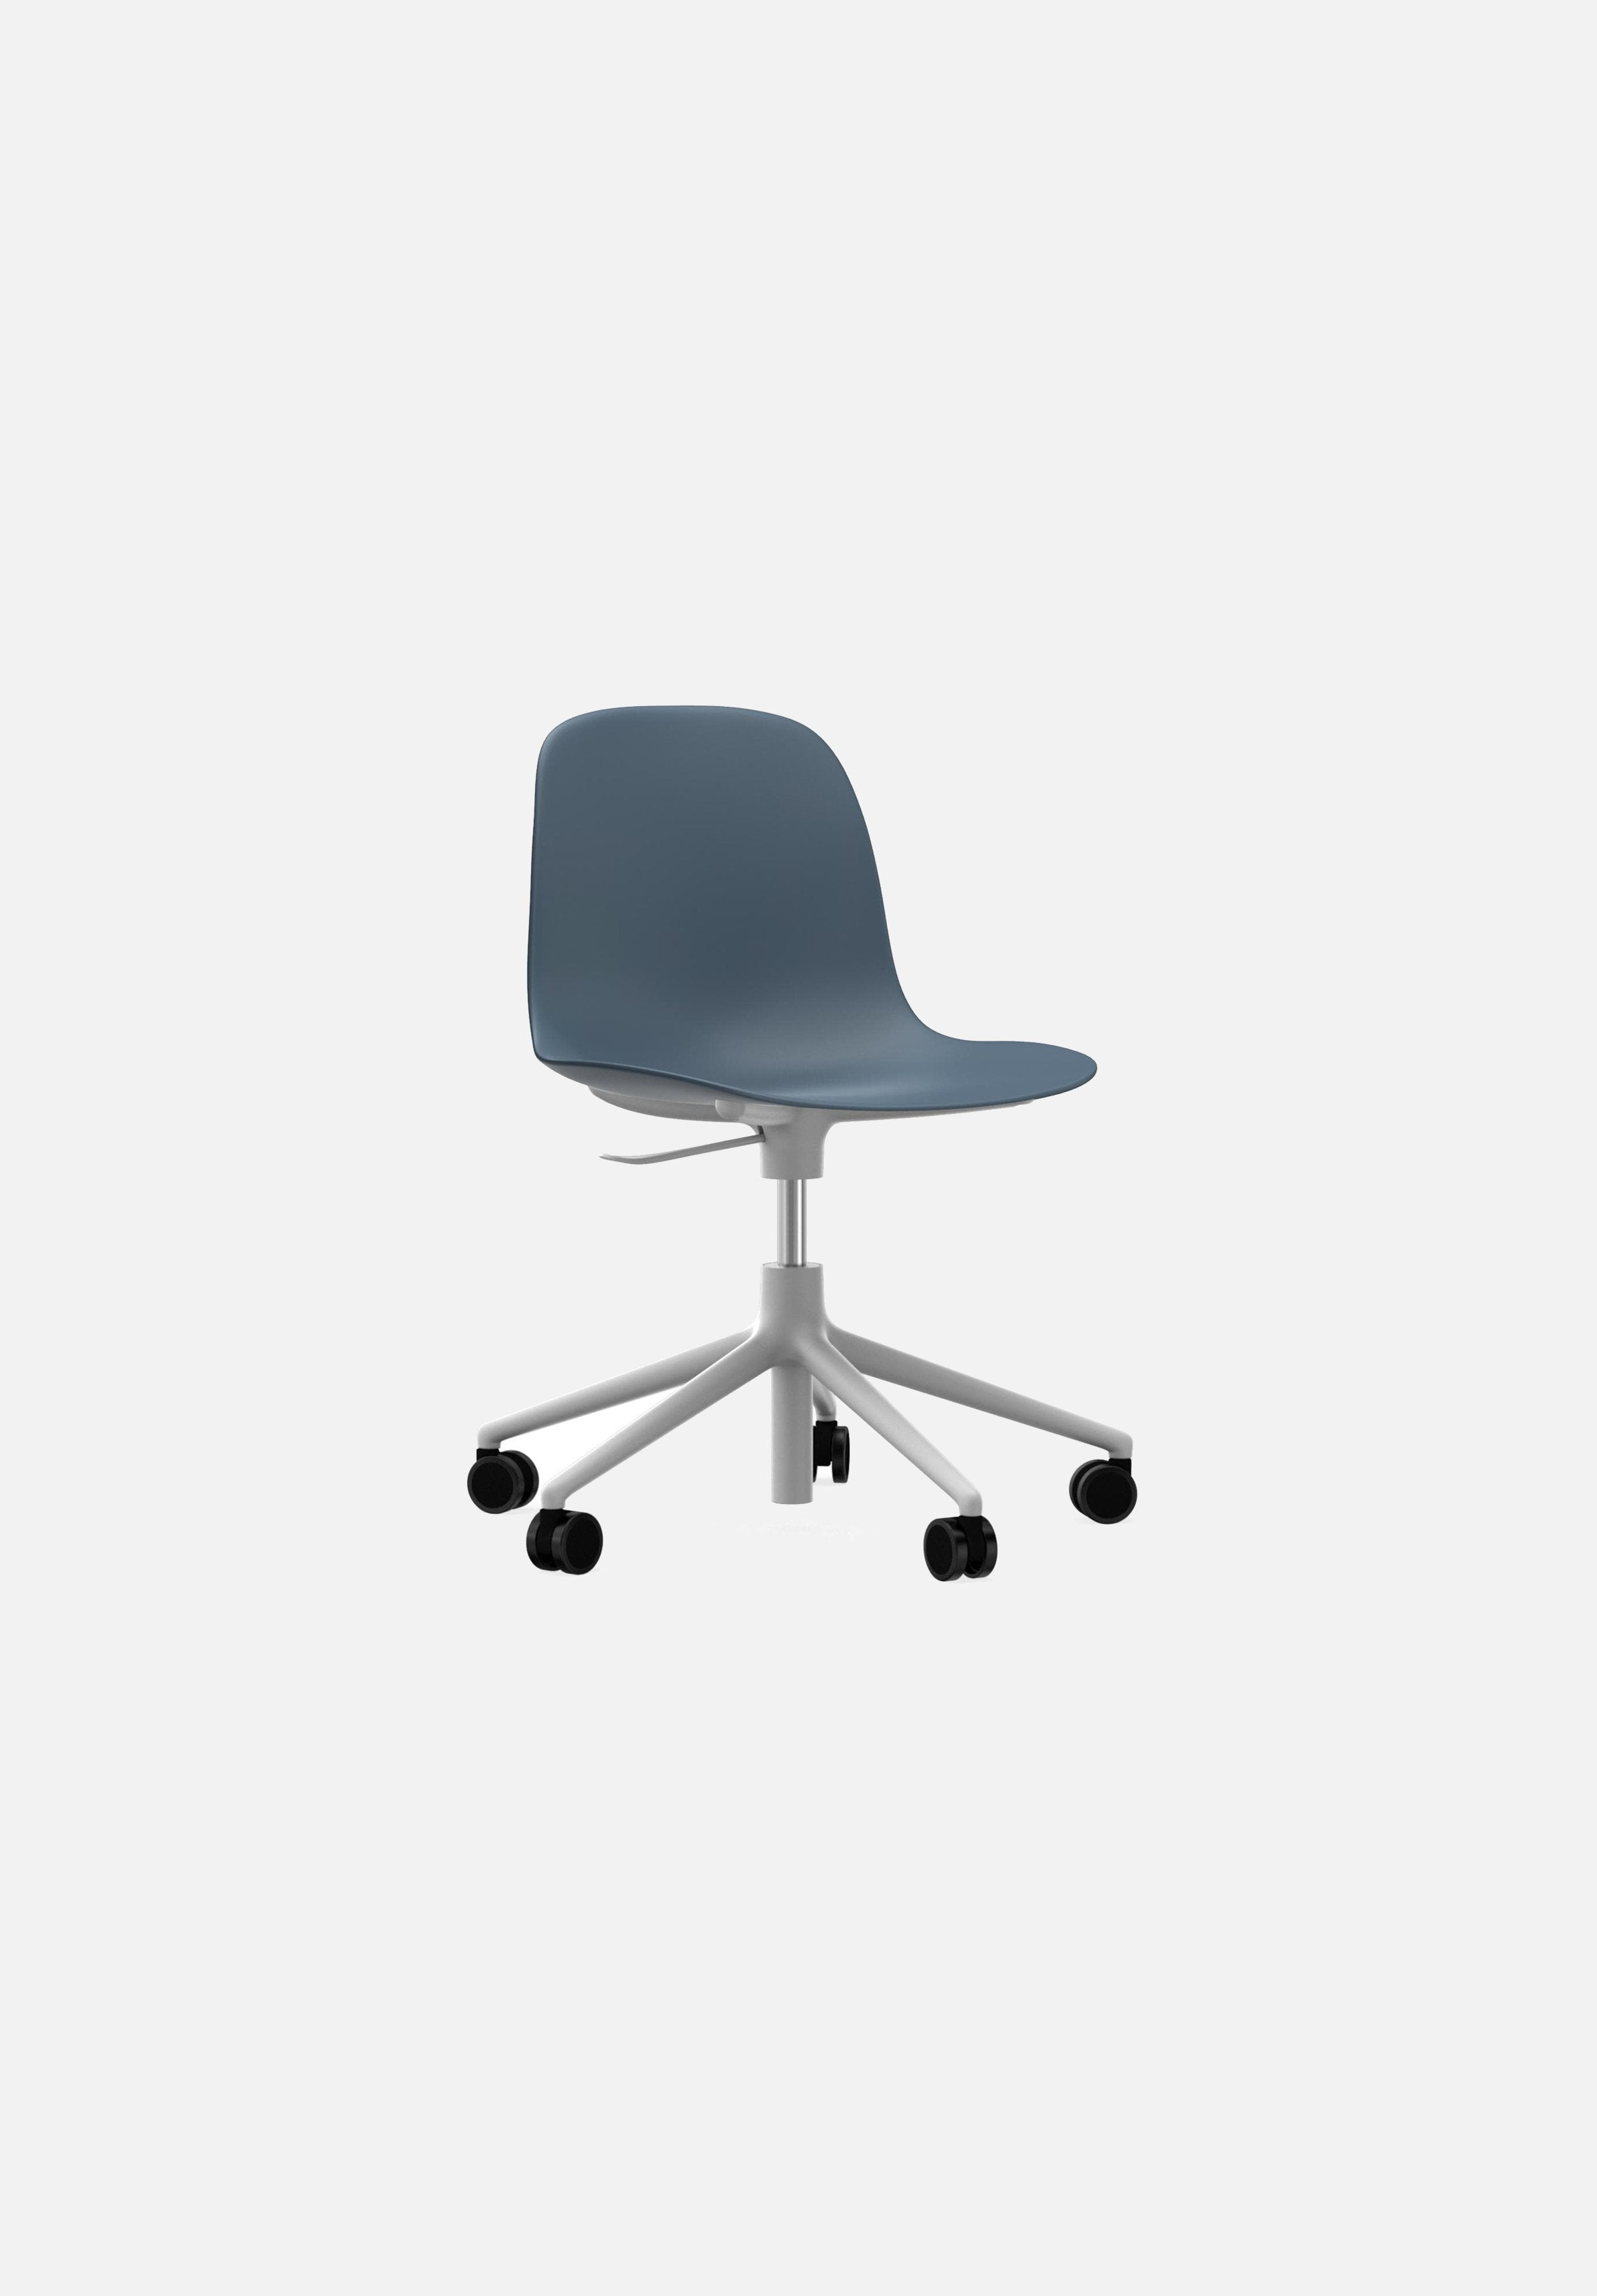 Form Chair — Swivel Gaslift-Simon Legald-Normann Copenhagen-Blue-White Aluminum-Average-canada-design-store-danish-denmark-furniture-interior